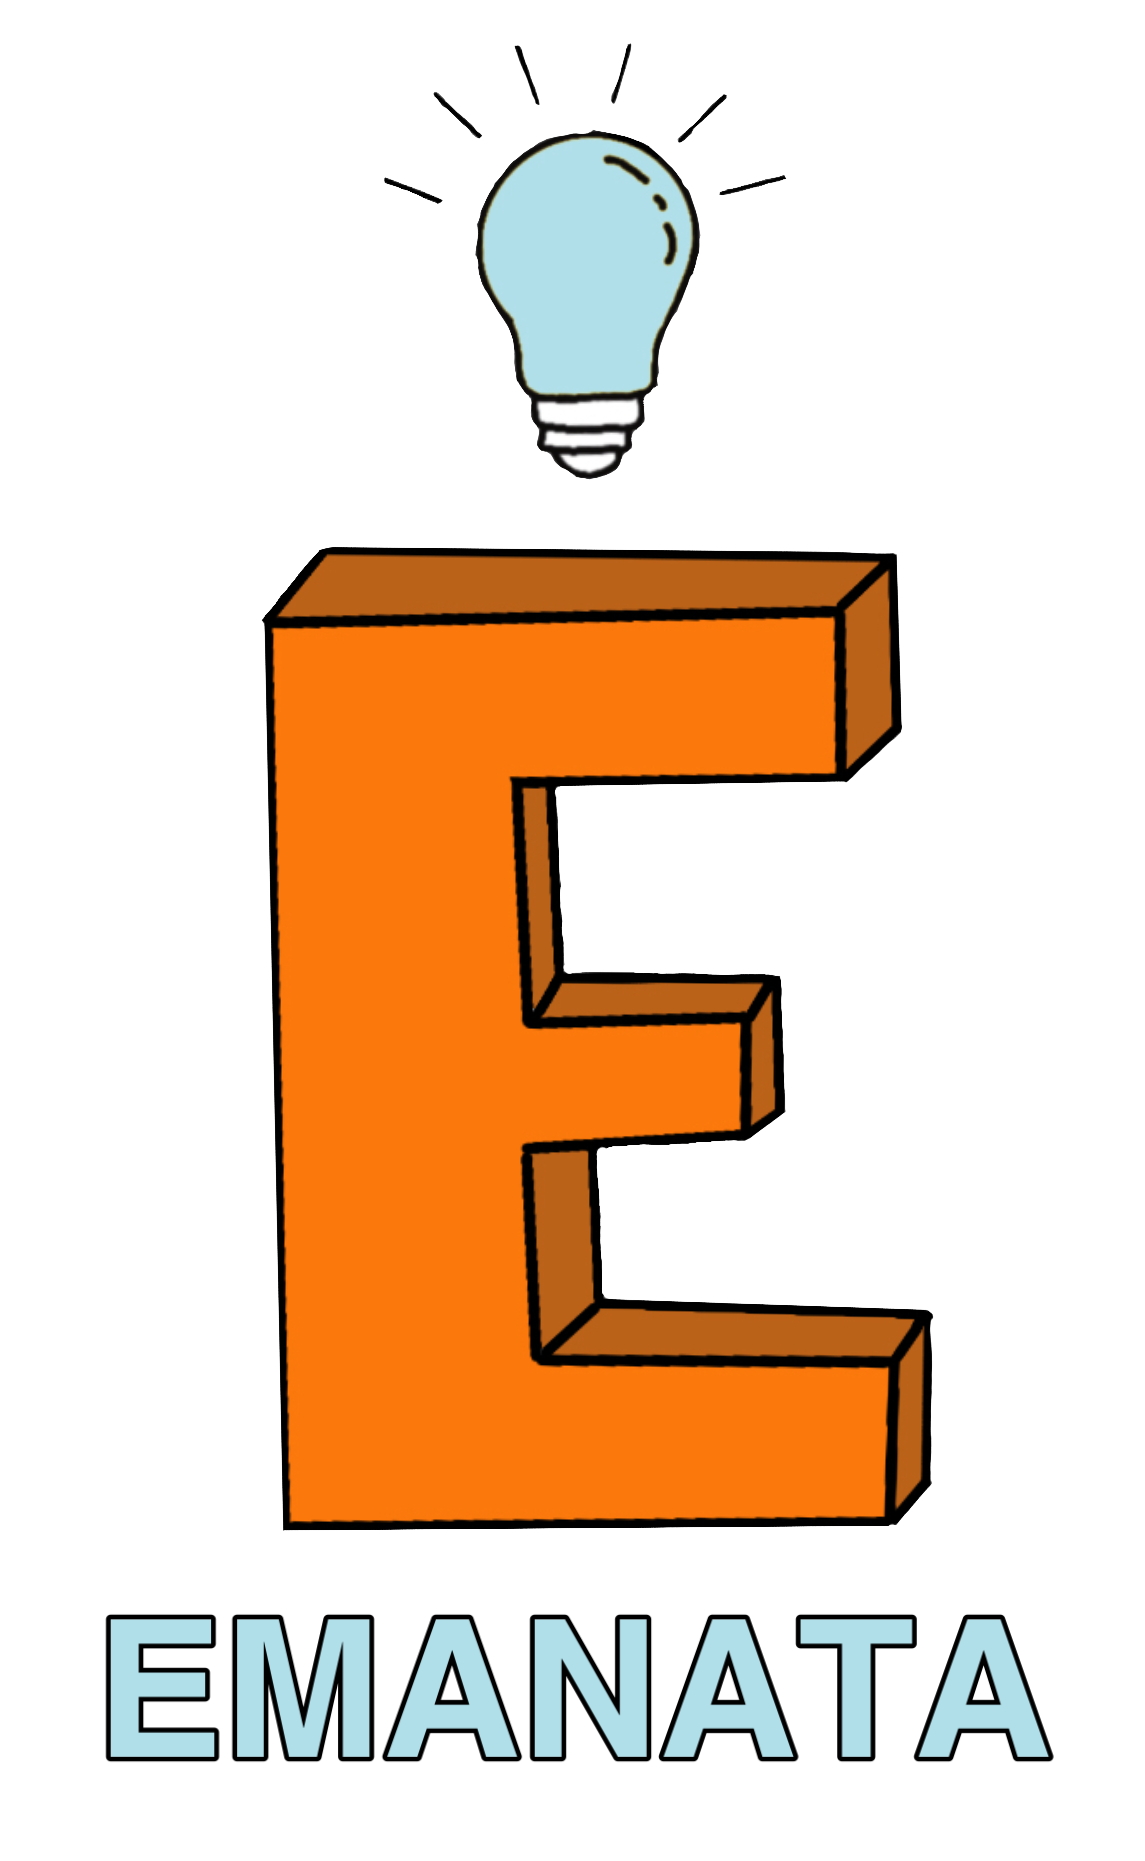 Emanata logo: A large letter E, orange and blocky, with a light blue lightbulb hovering above it. Lines emanate from the lightbulb. The word Emanata is below the E.